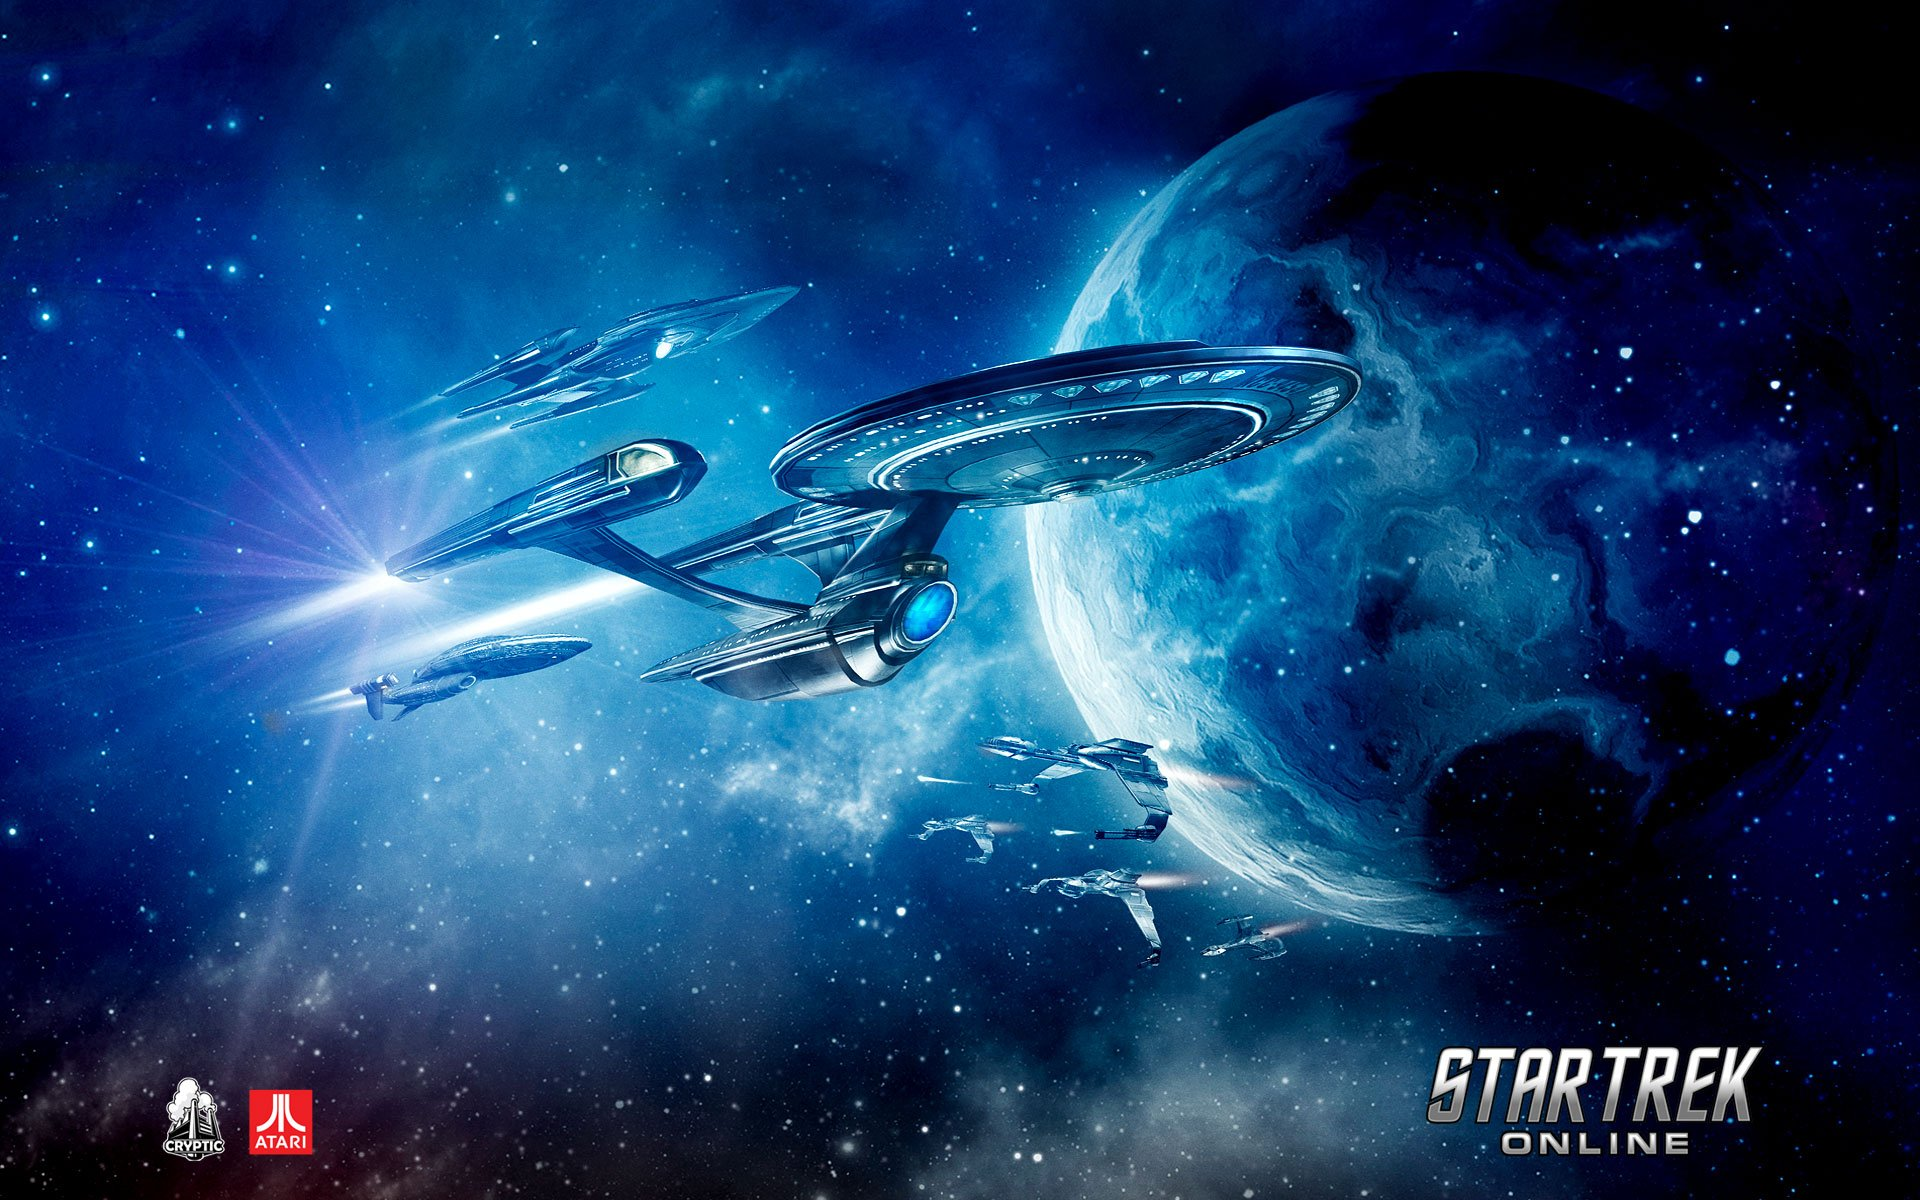 Star Trek Online Wallpapers 1920x1200